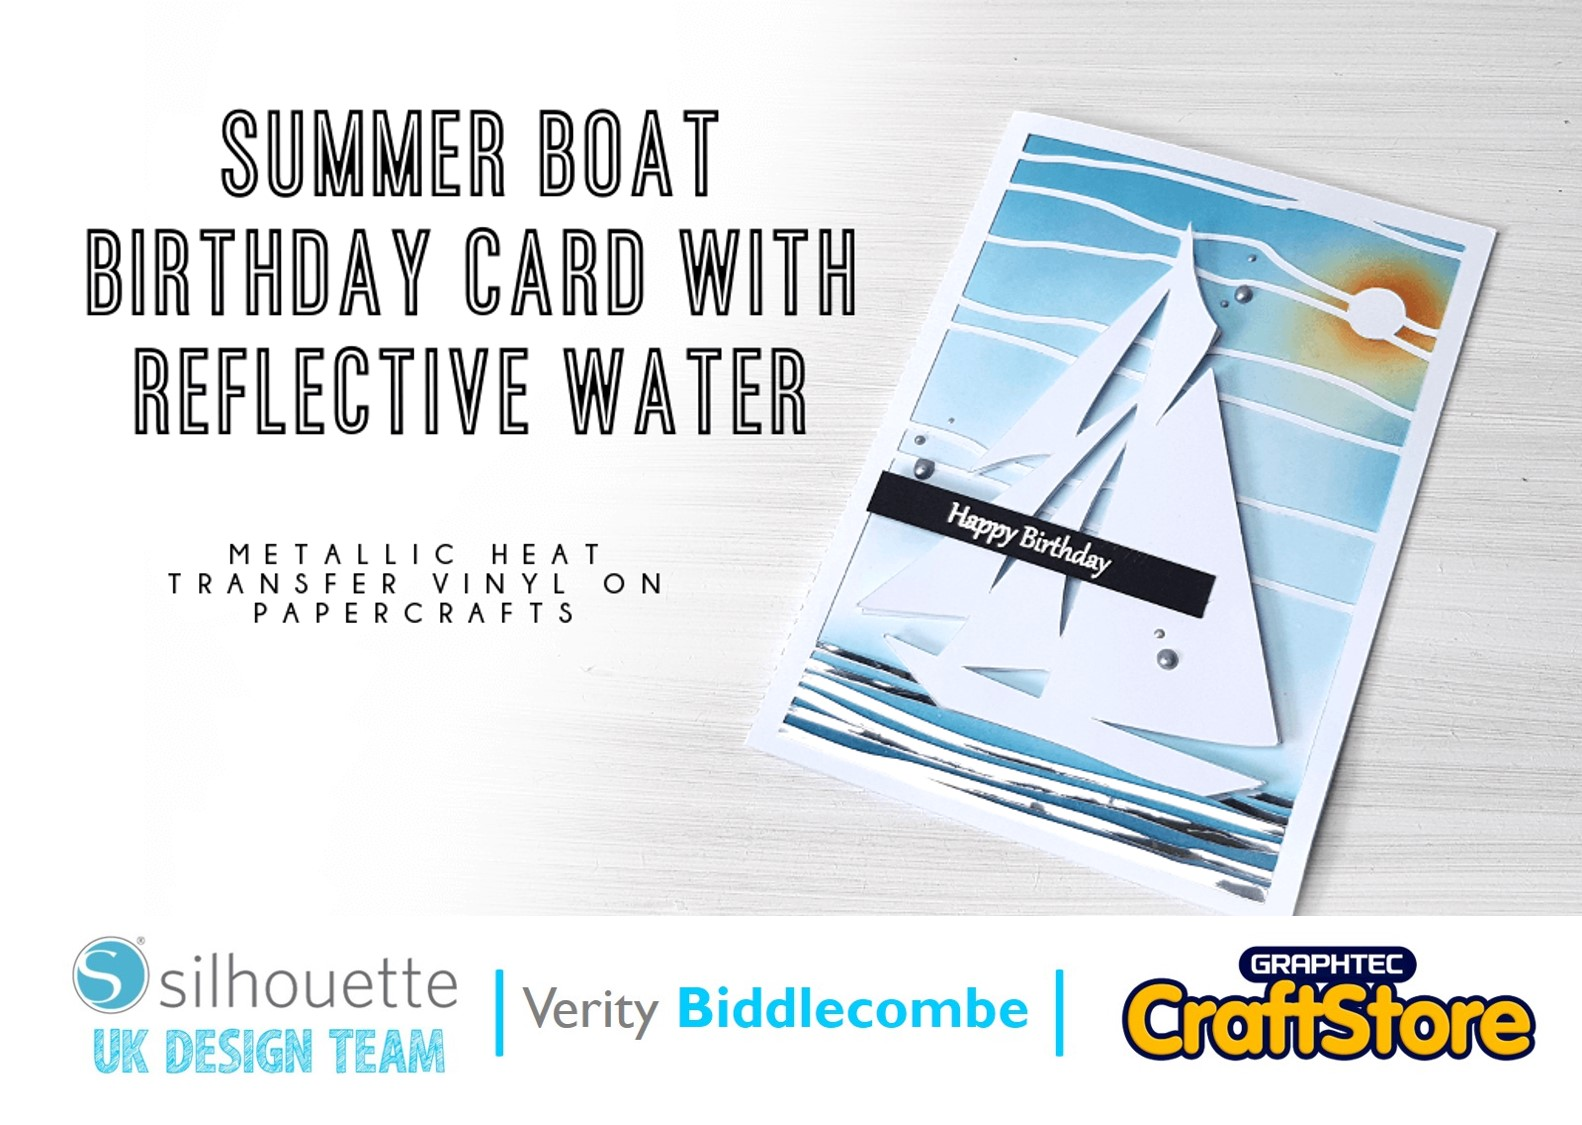 Summer Boat Birthday Card | Verity Biddlecombe | Silhouette UK Blog